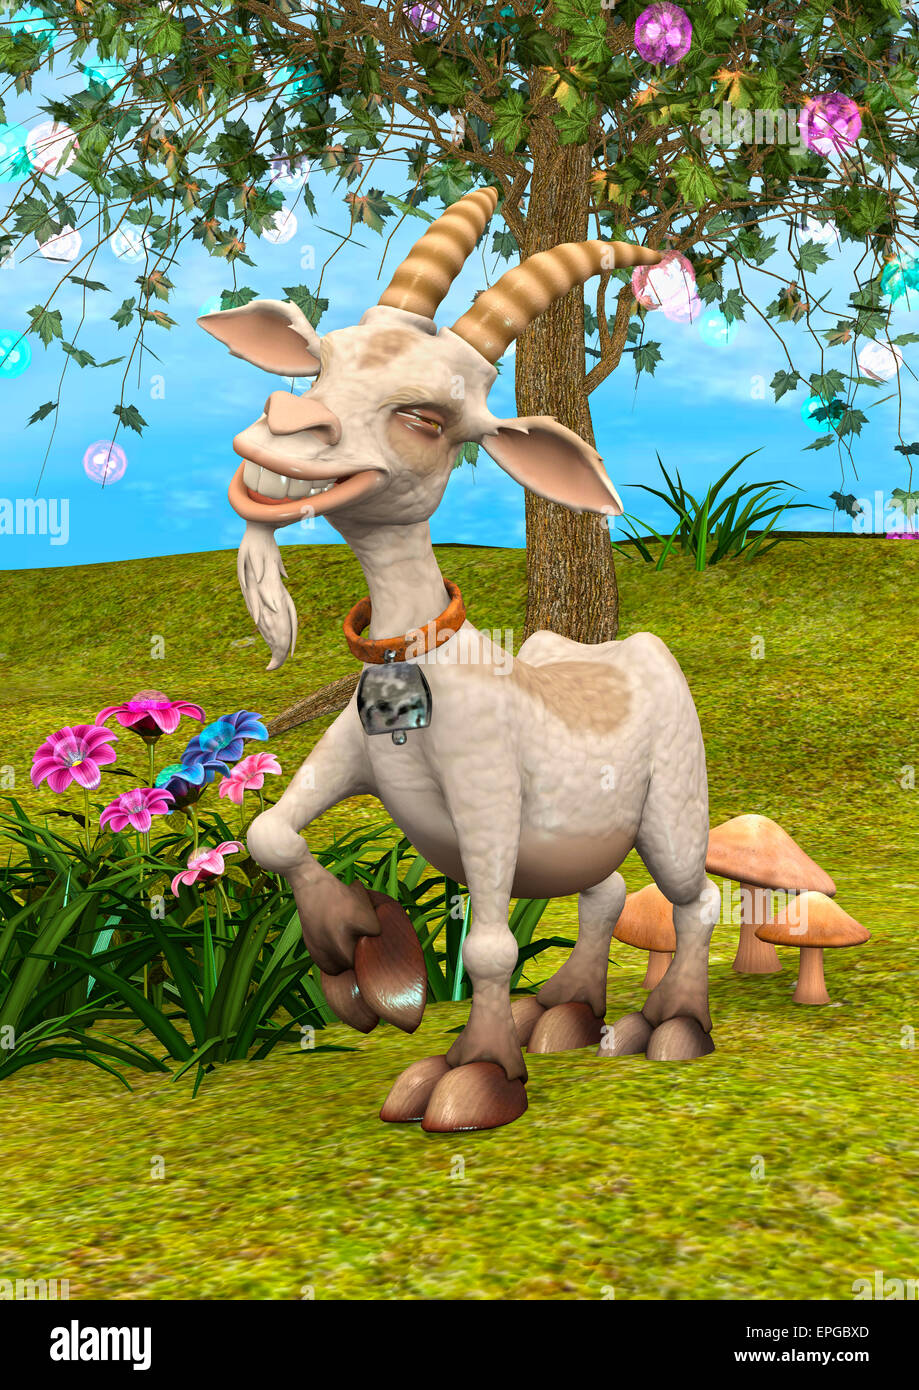 3D Digital Render Of A Happy Cartoon Goat On A Fantasy Garden Background